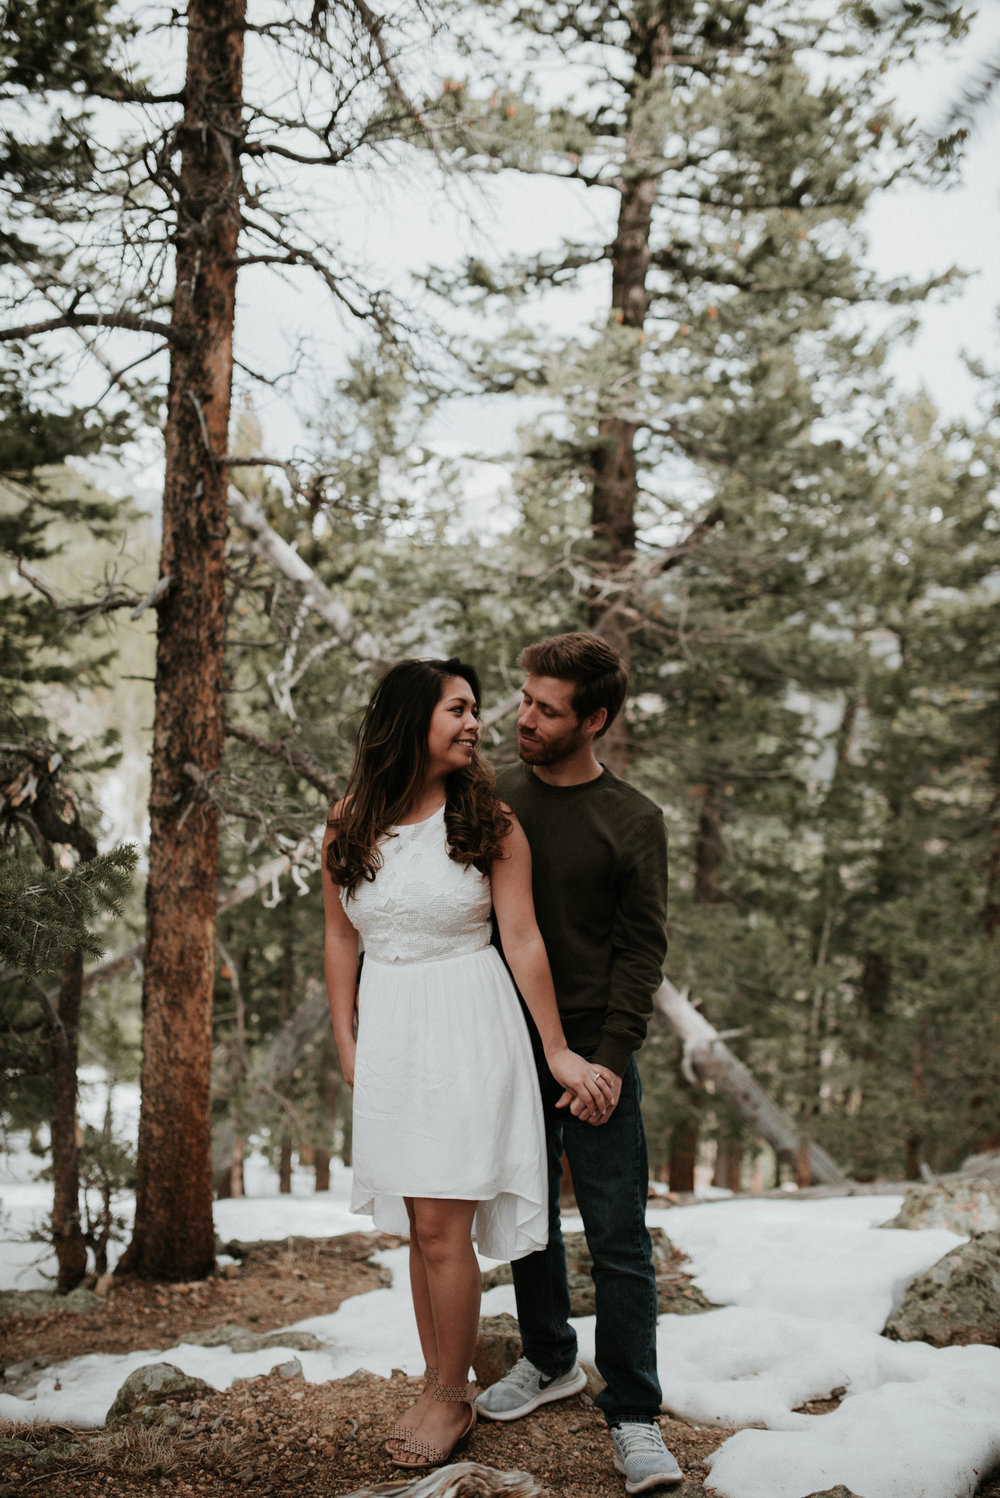 Zach&Rosalie Rocky Mountain National Park Engagement Denver Colorado Rocky Mountain Wedding Photographer00024.jpg